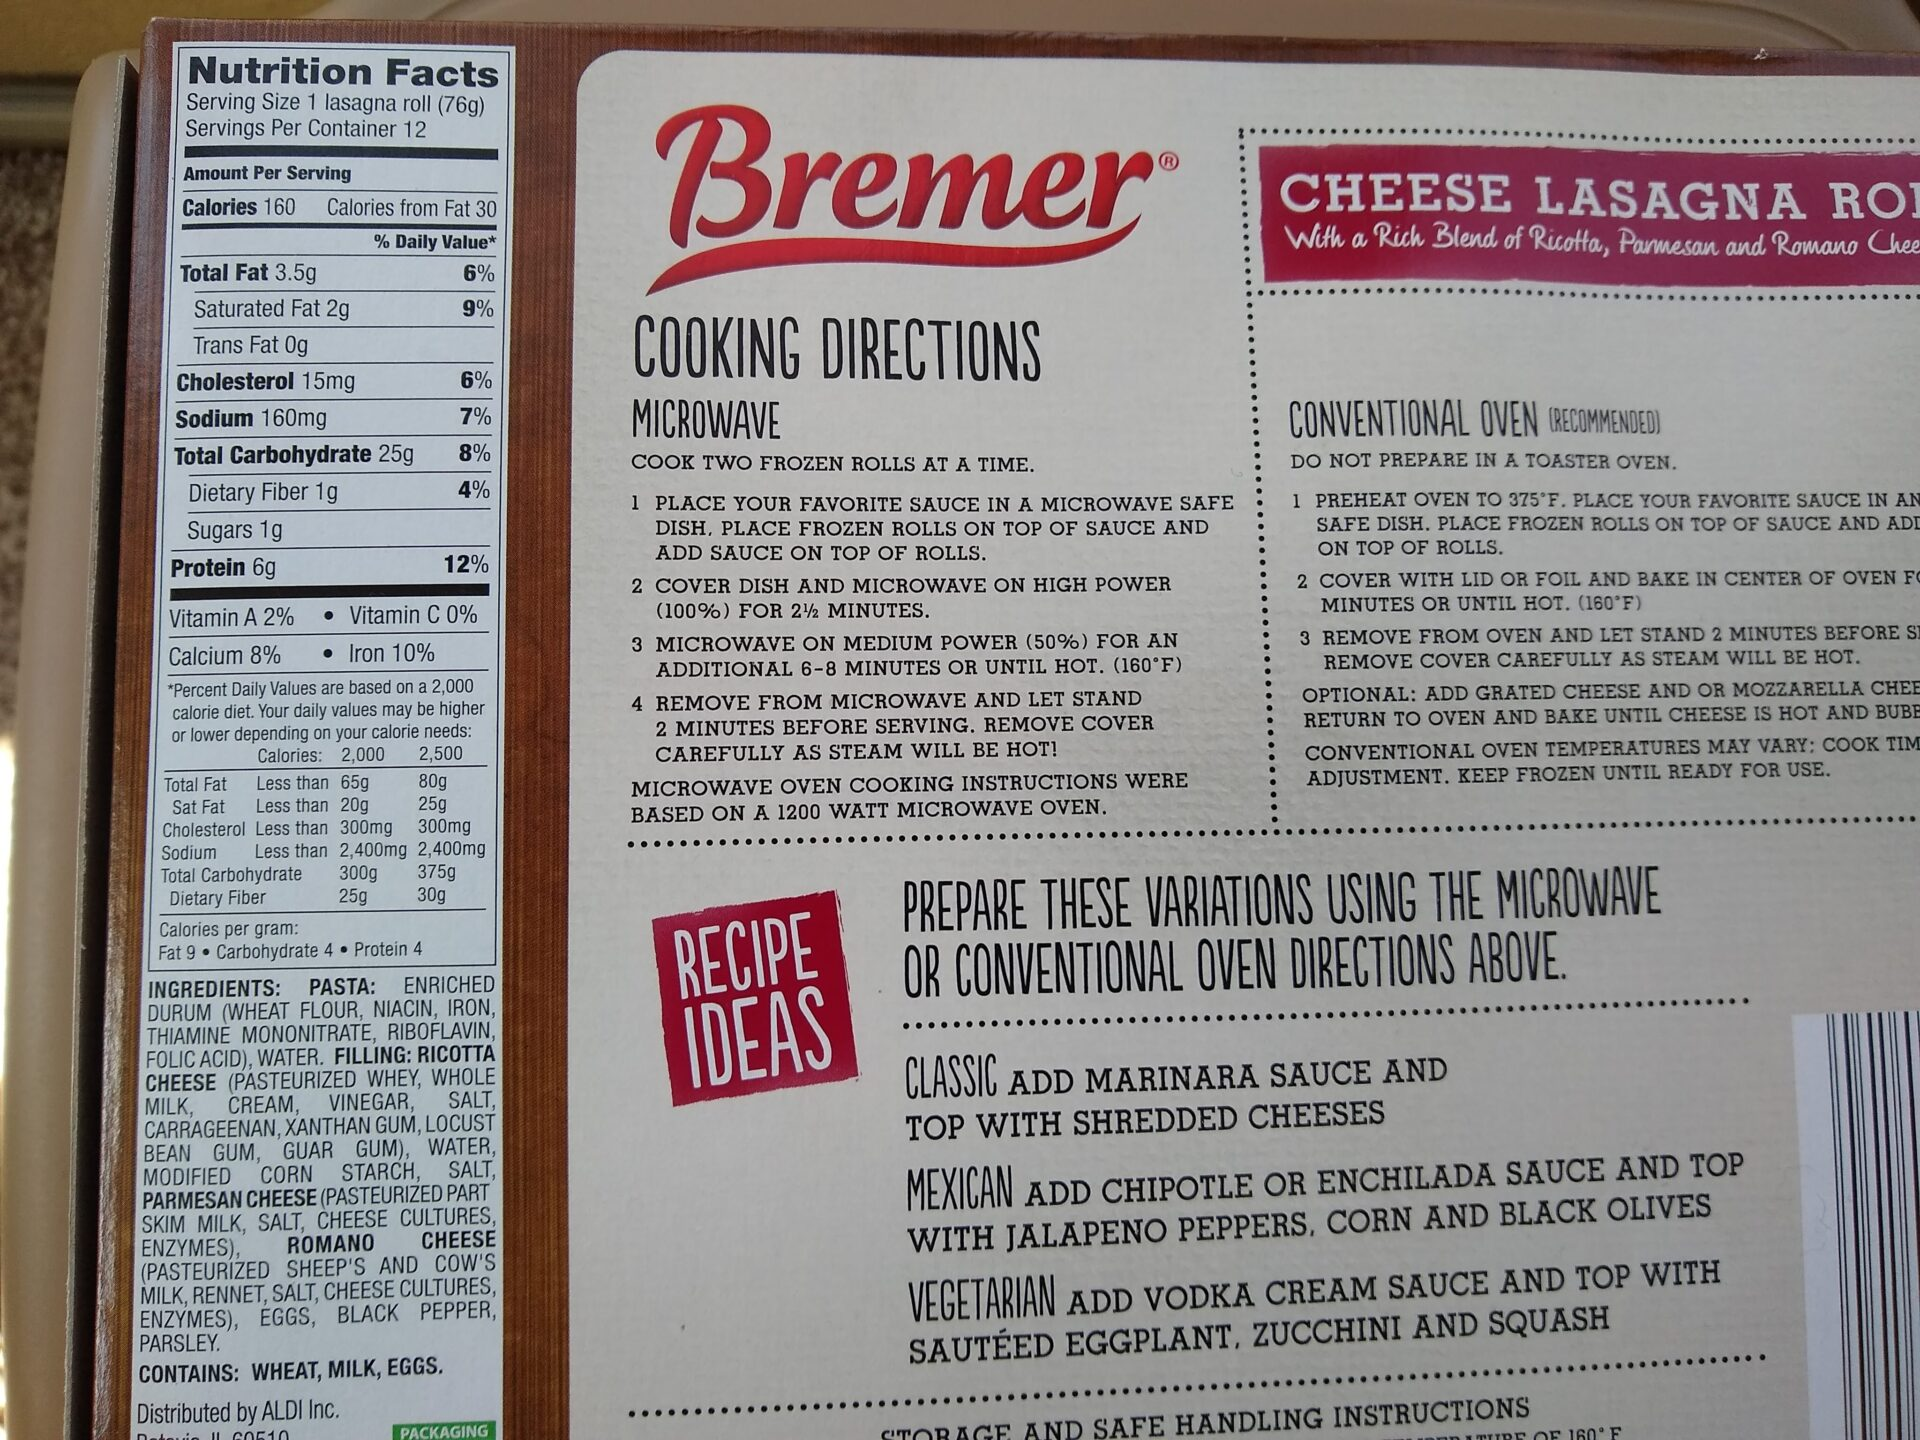 Bremer Cheese Lasagna Rolls nutrition and ingredients. jpg